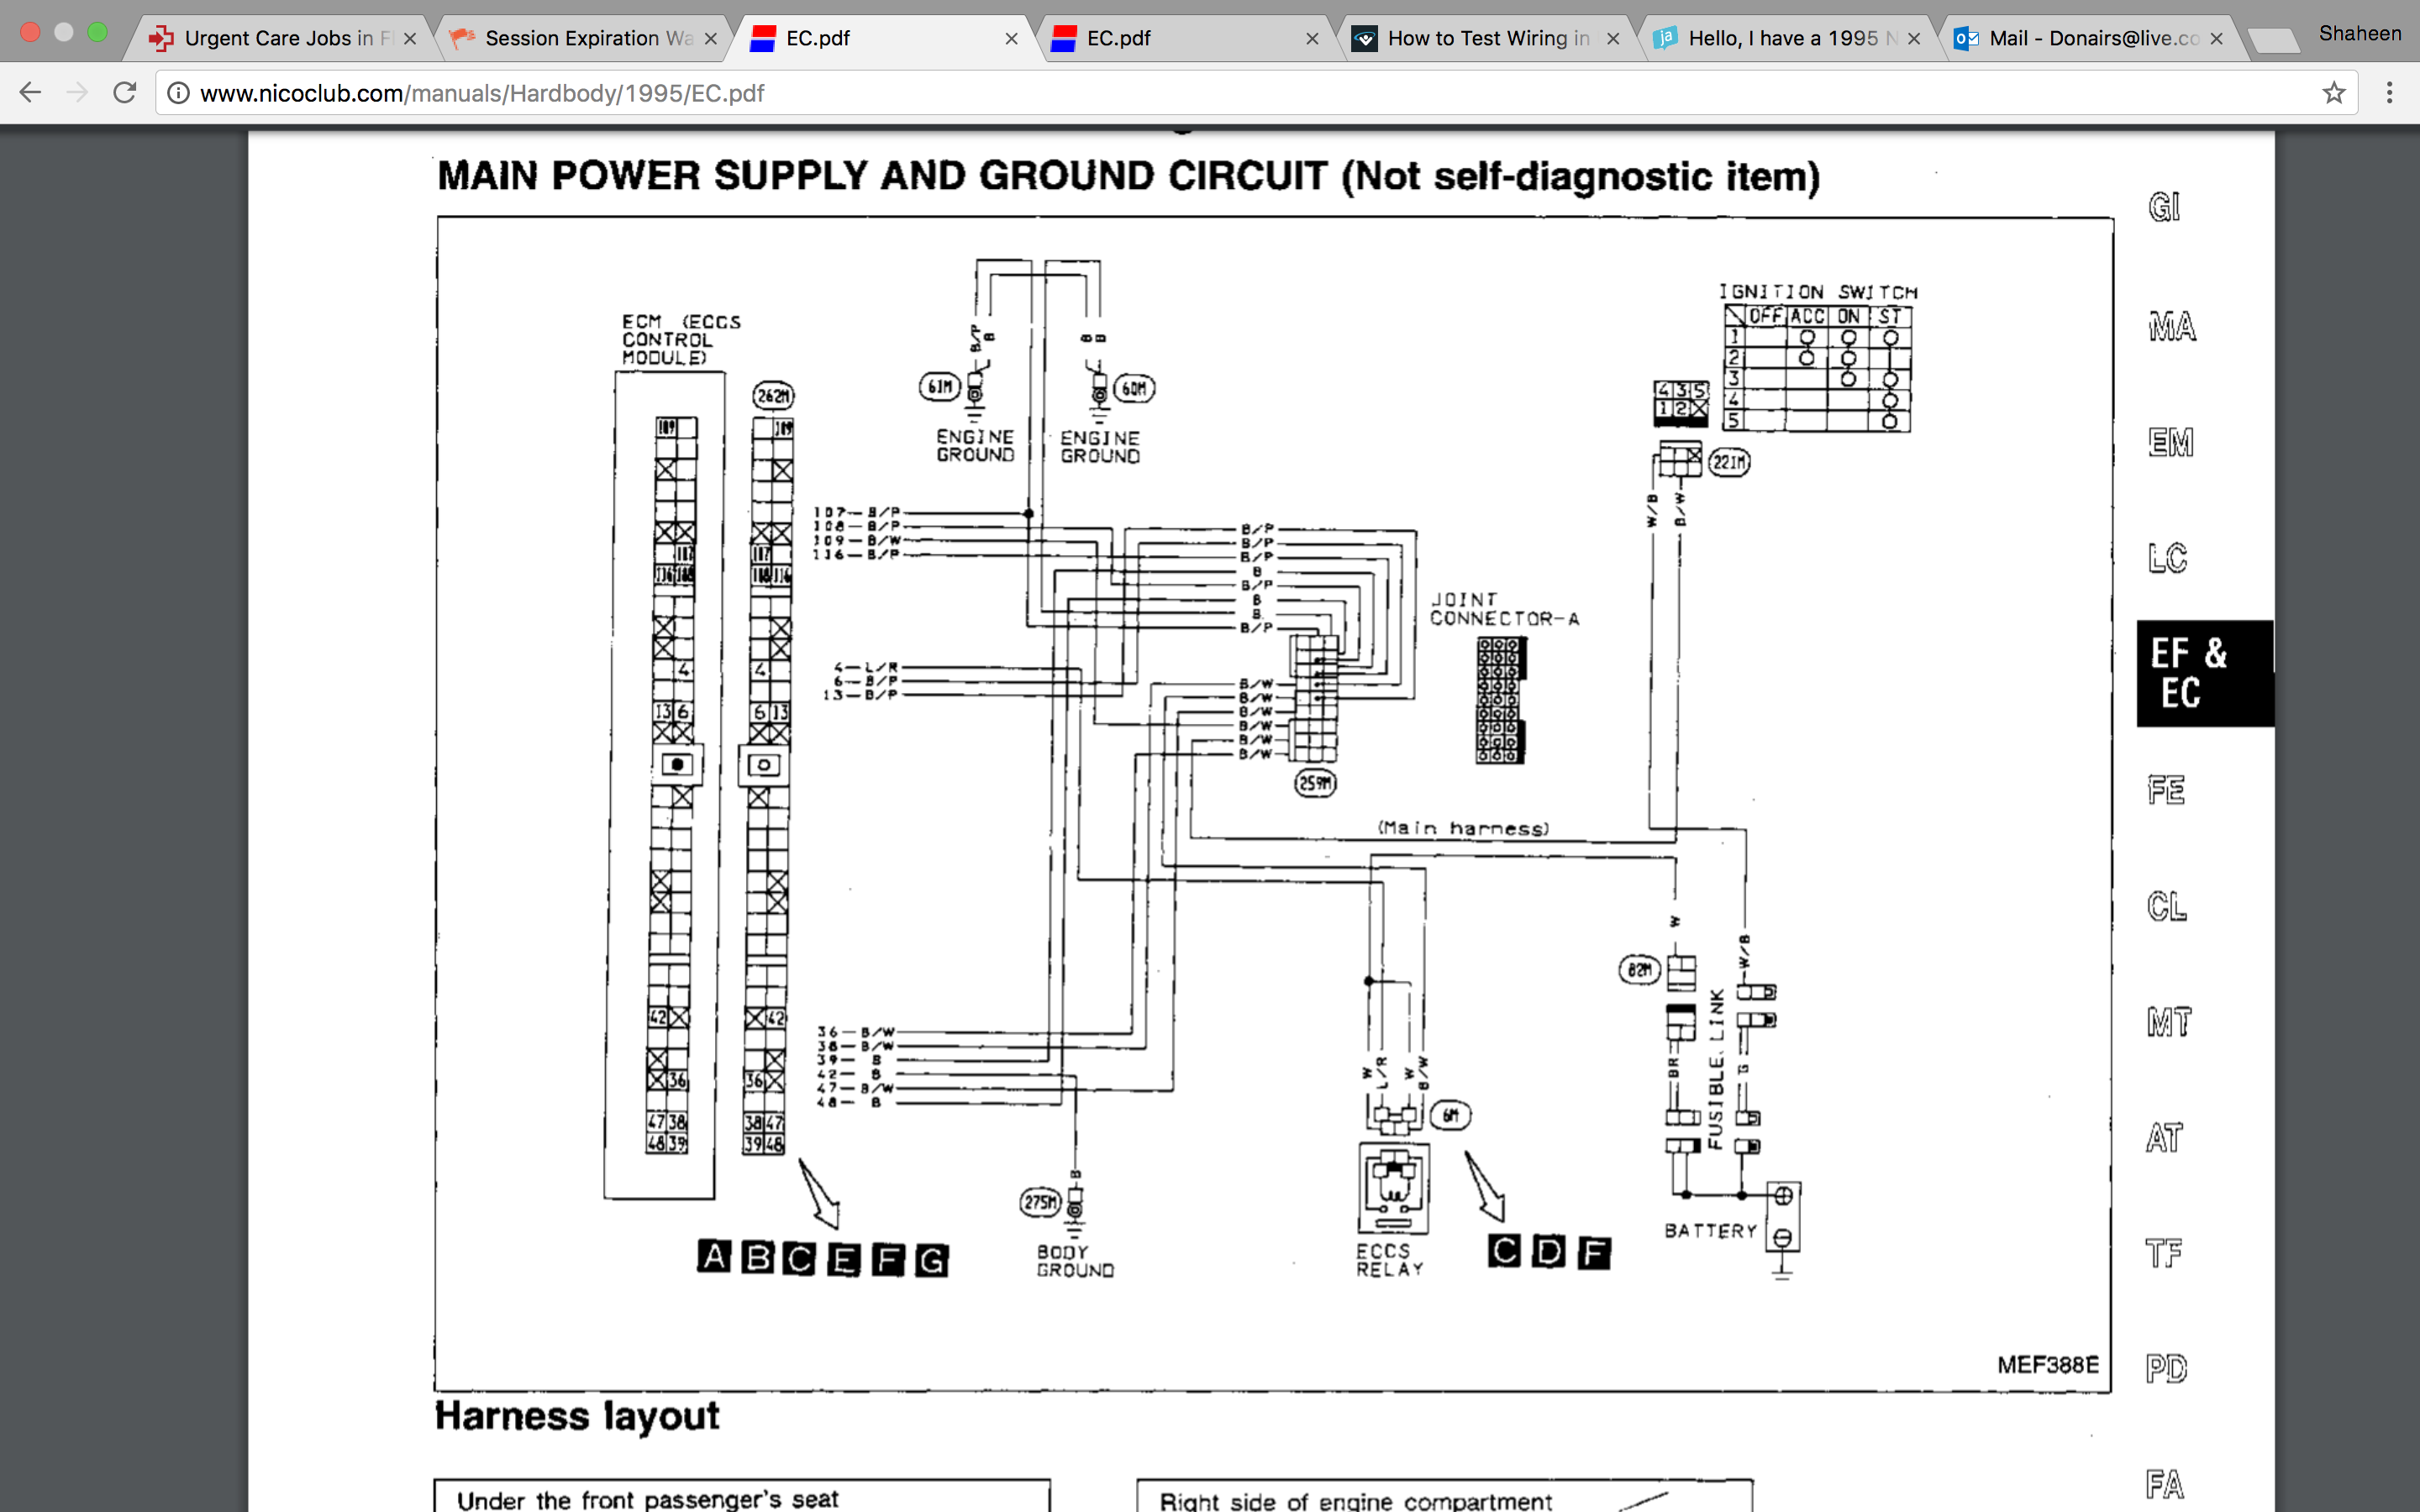 Amp Wiring Diagram For Auto Will Be A Thing 92 Lexus Sc400 I Have 1995 Nissan D21 2 4l M Trying To Figure Out 1992